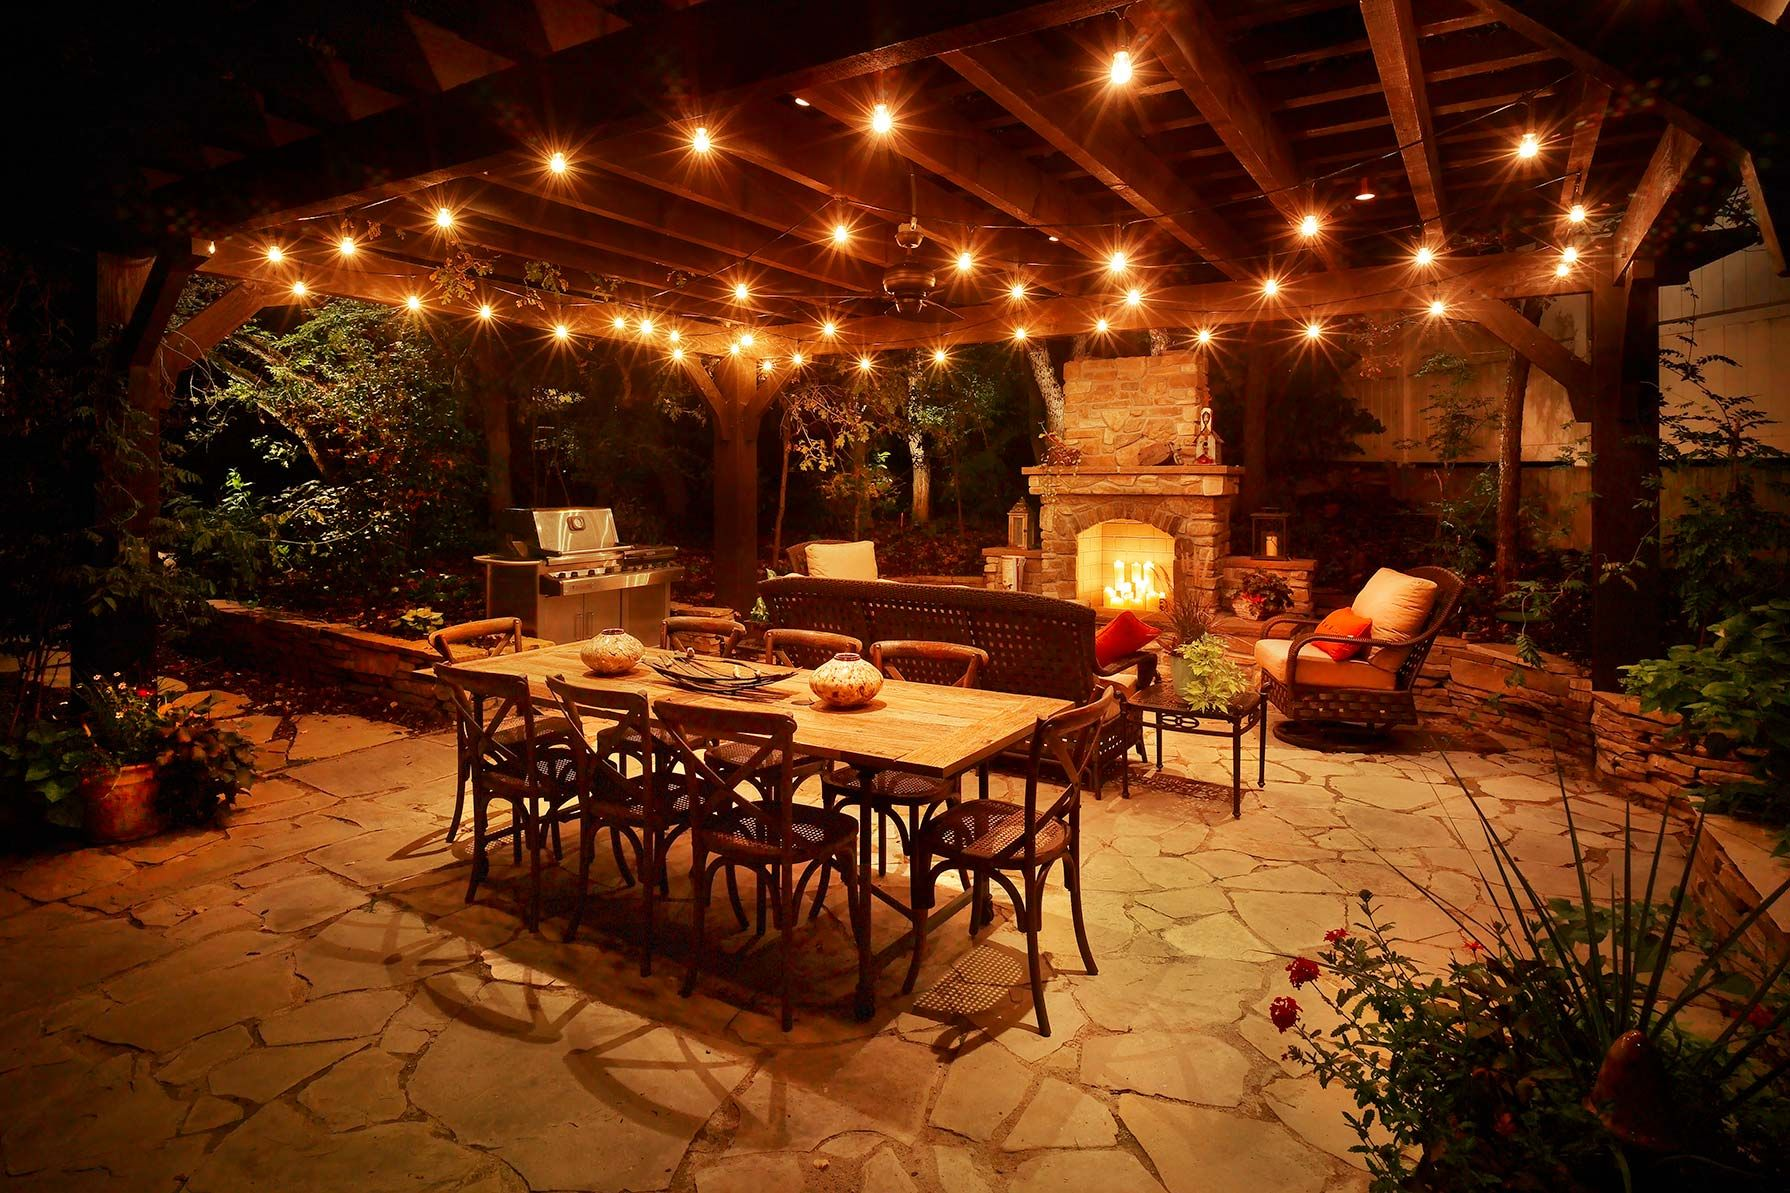 Patio Lights | Festoon Lighting Composed With Down Lighting And Wash  Lighting. Let .